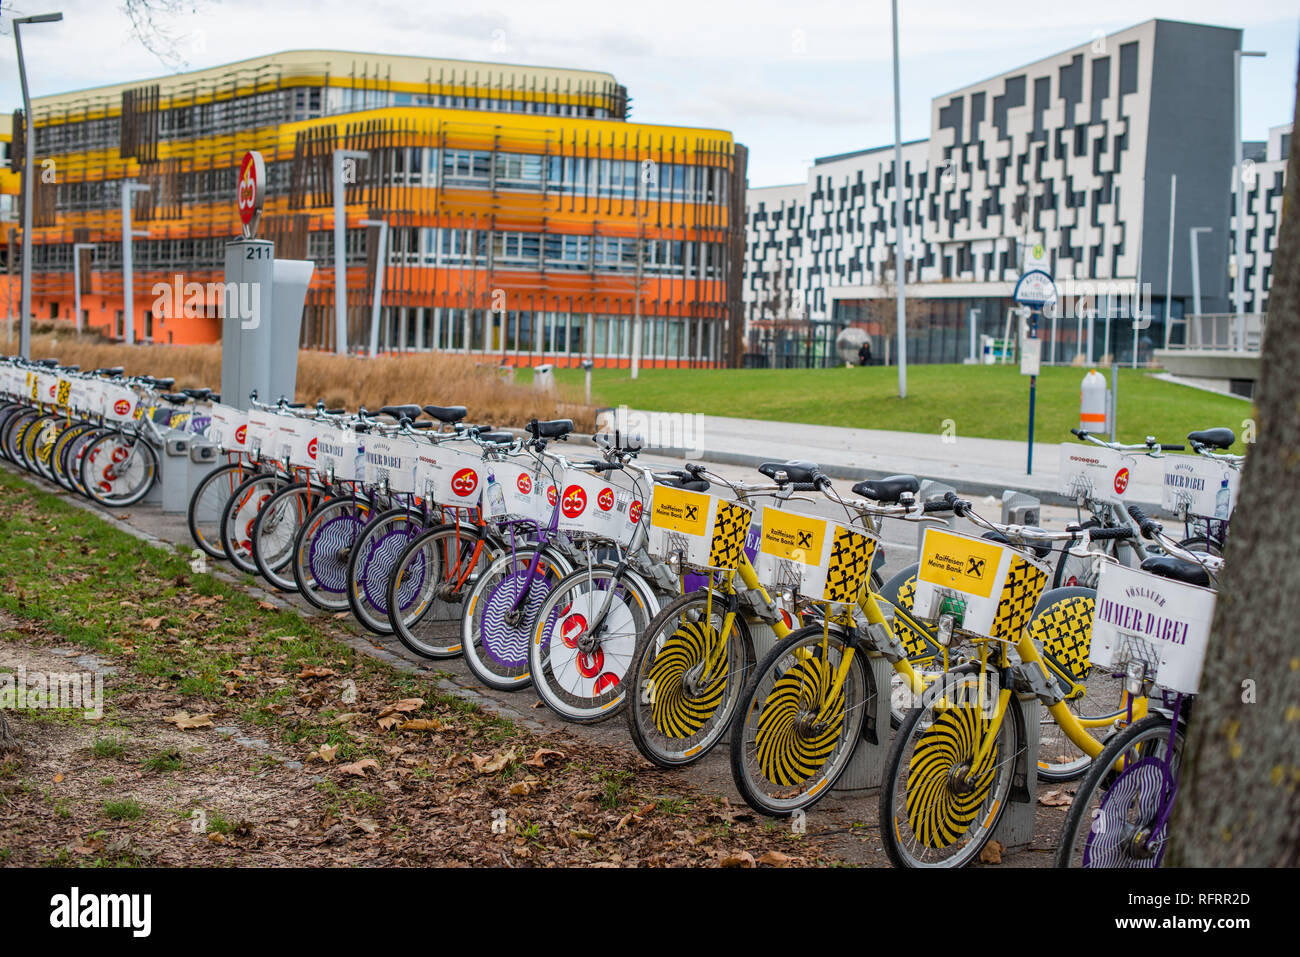 The D3 and AD Administration complex at the Vienna University of Economics and Business. Vienna, Austria. - Stock Image